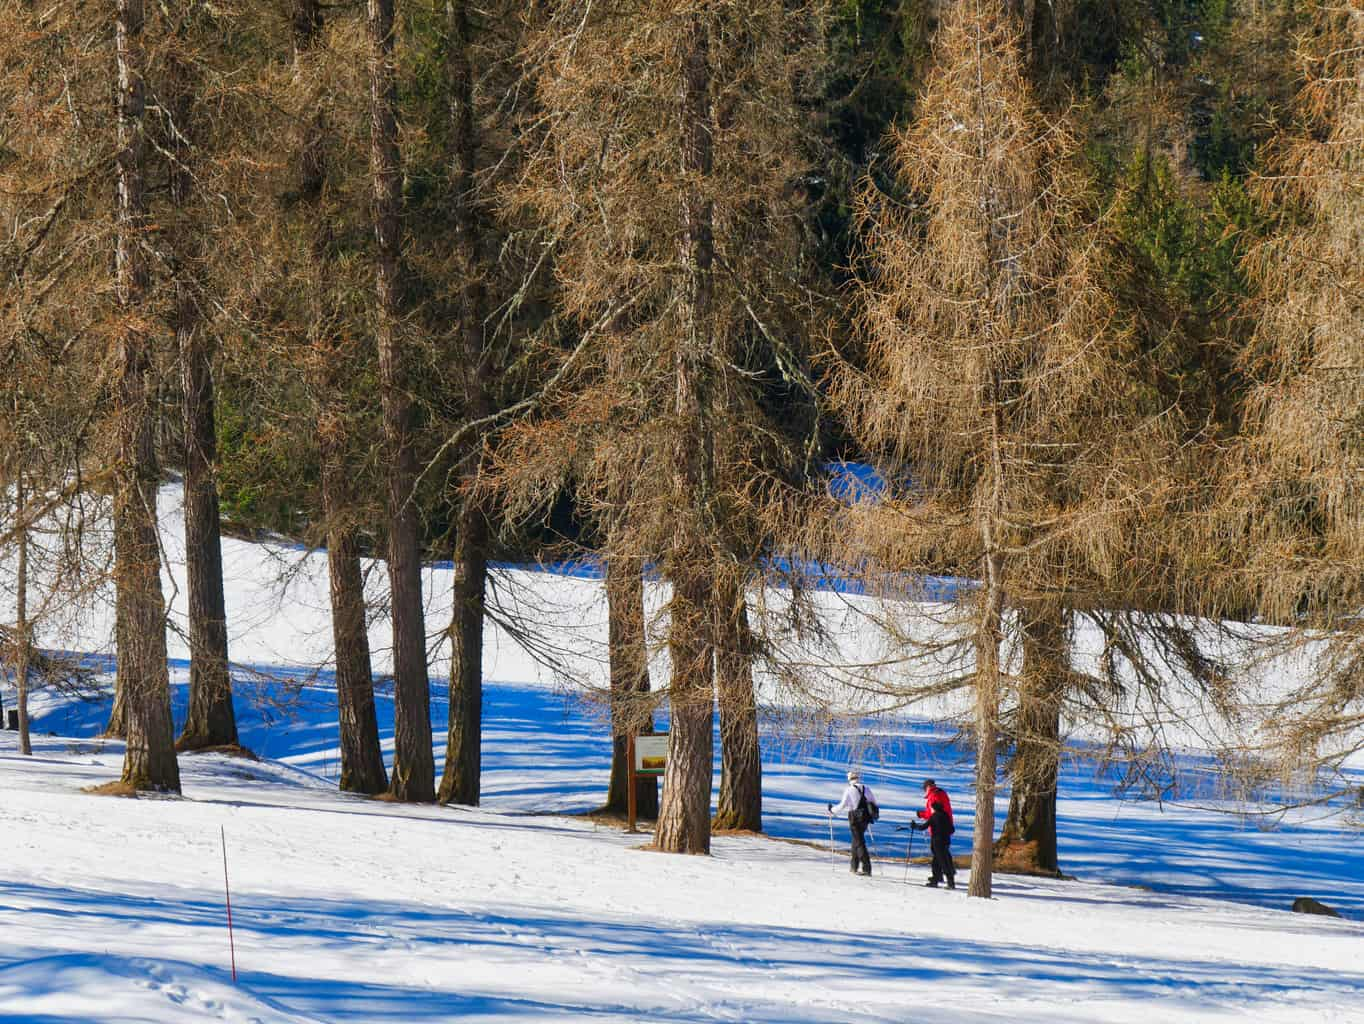 Hikers in the Site Nordique in Paradiski surrounded by trees and snow